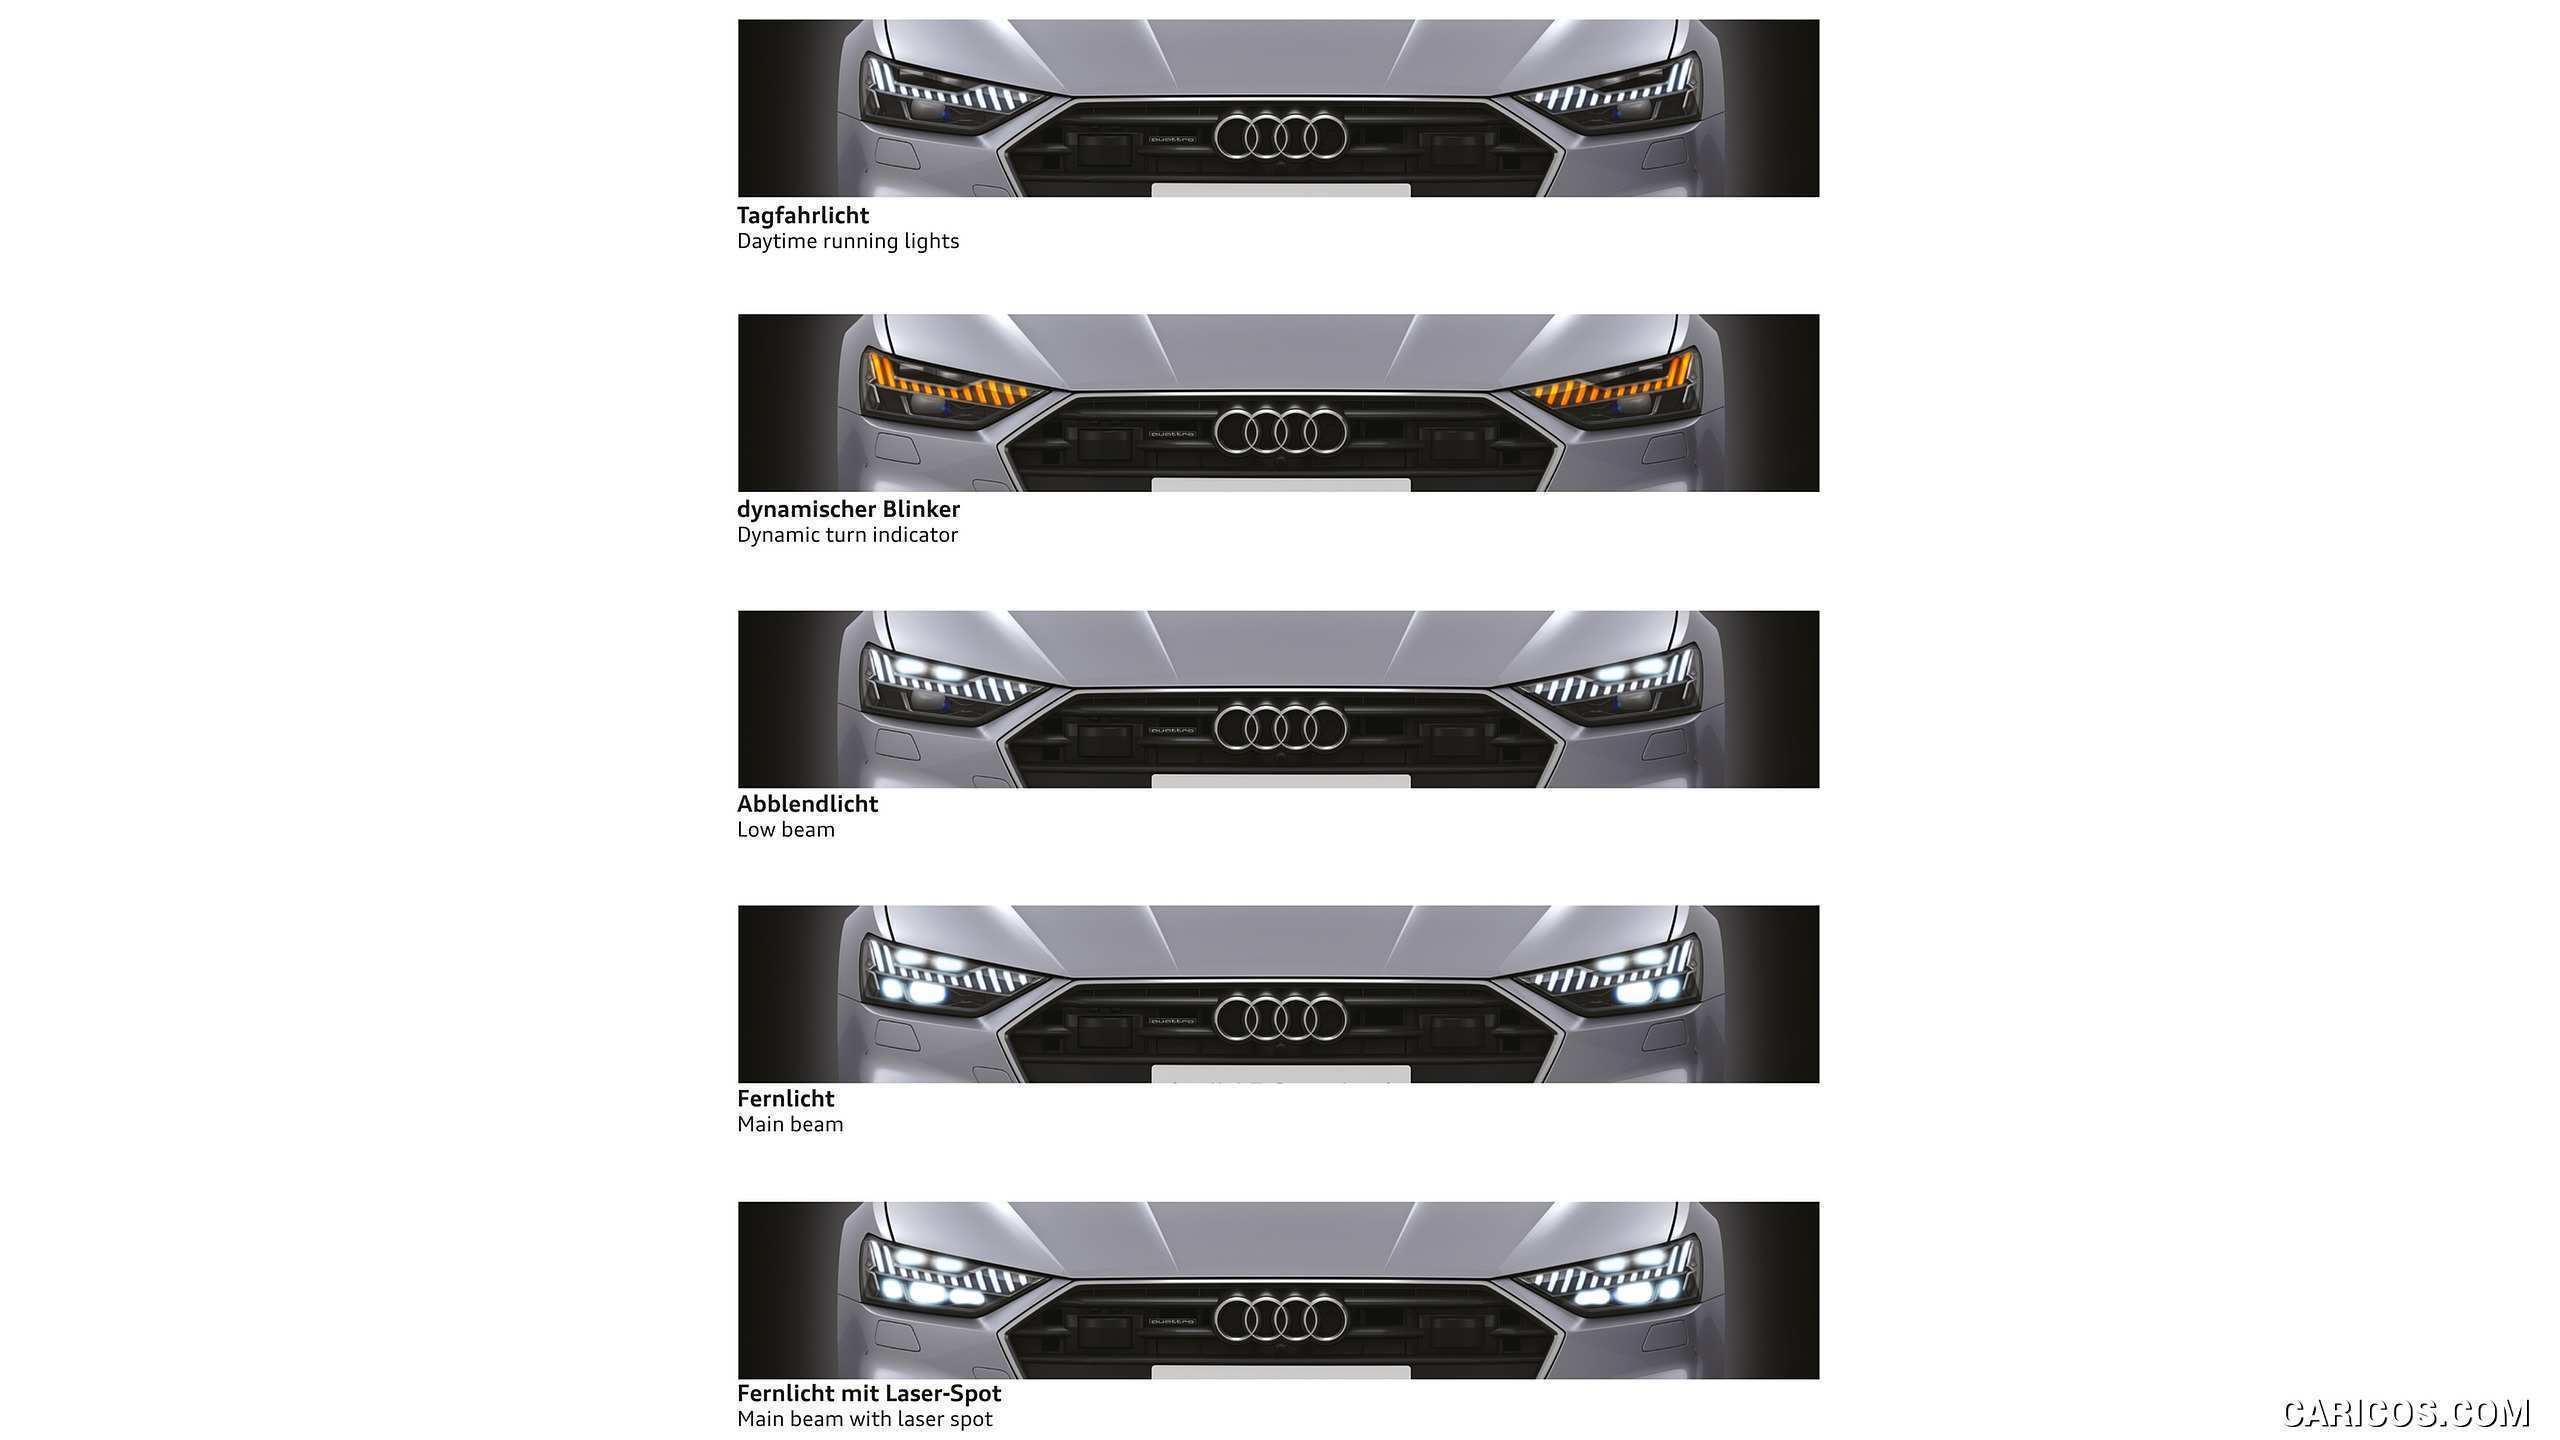 50 New 2019 Audi A7 Headlights Spy Shoot by 2019 Audi A7 Headlights